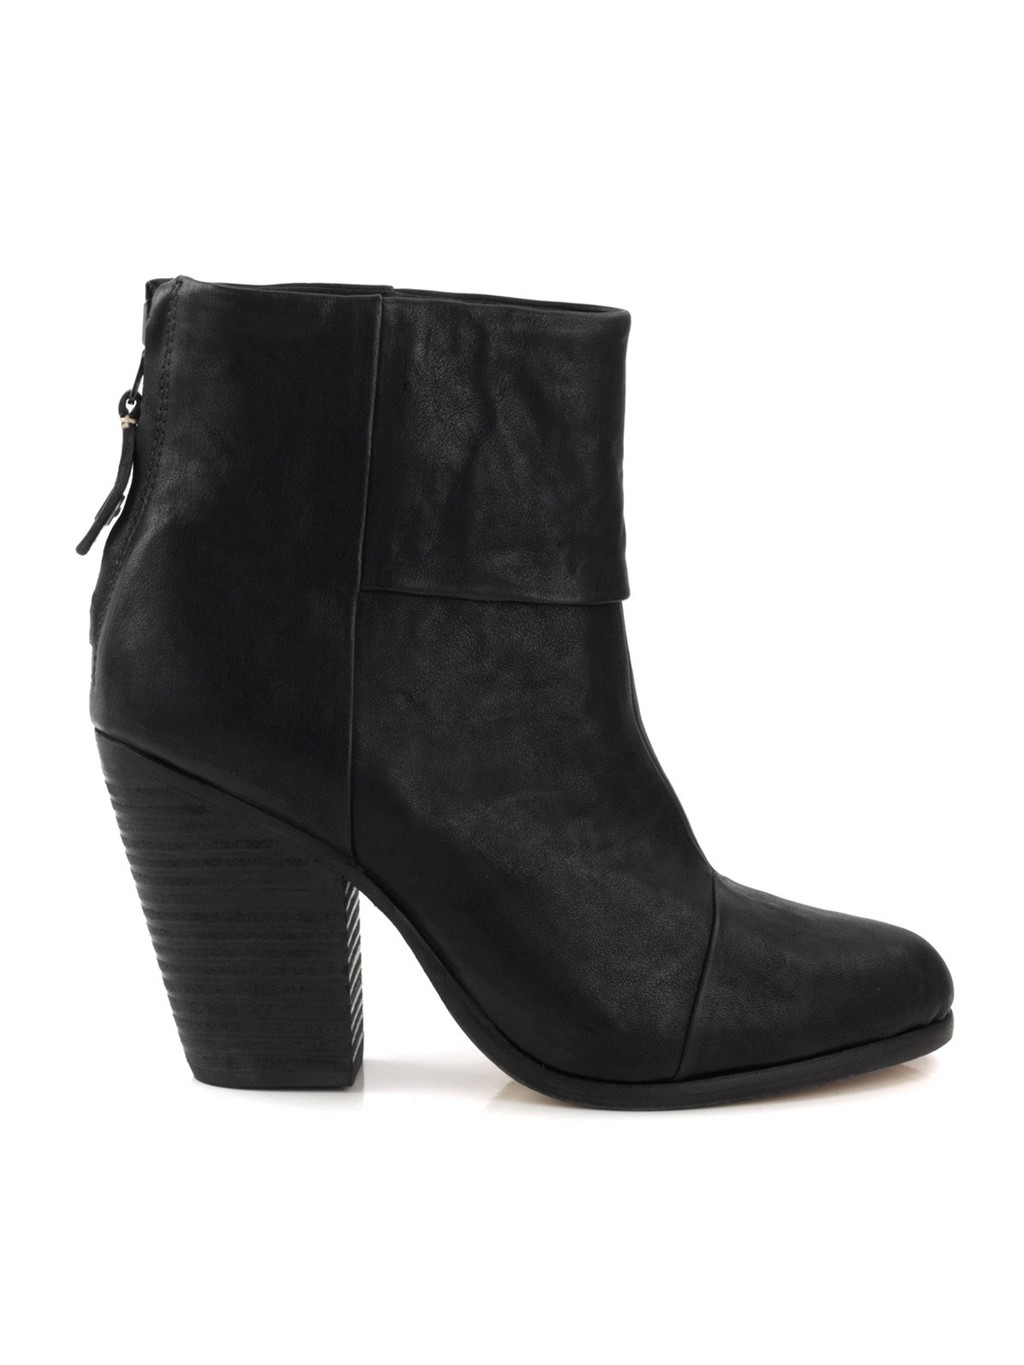 Rag Bone Classic Newbury Boot - predominant colour: navy; occasions: casual; material: suede; heel height: high; heel: block; toe: round toe; boot length: ankle boot; style: standard; finish: plain; pattern: plain; season: s/s 2015